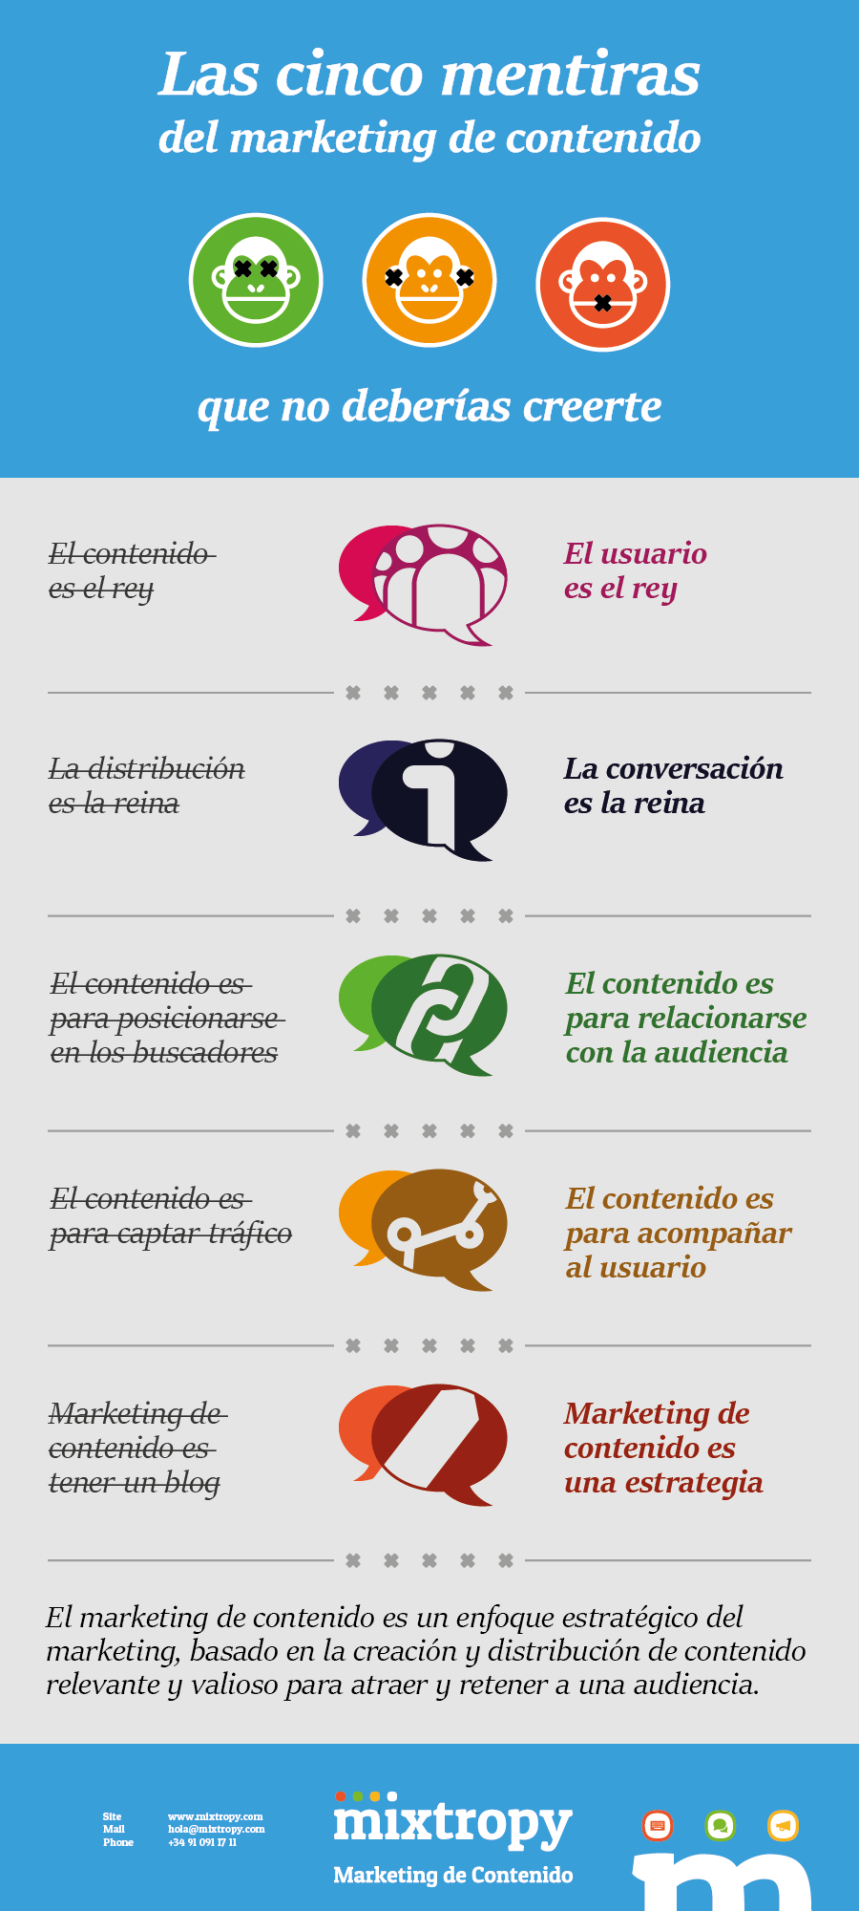 5-mentiras-del-marketing-de-contenido-infografia